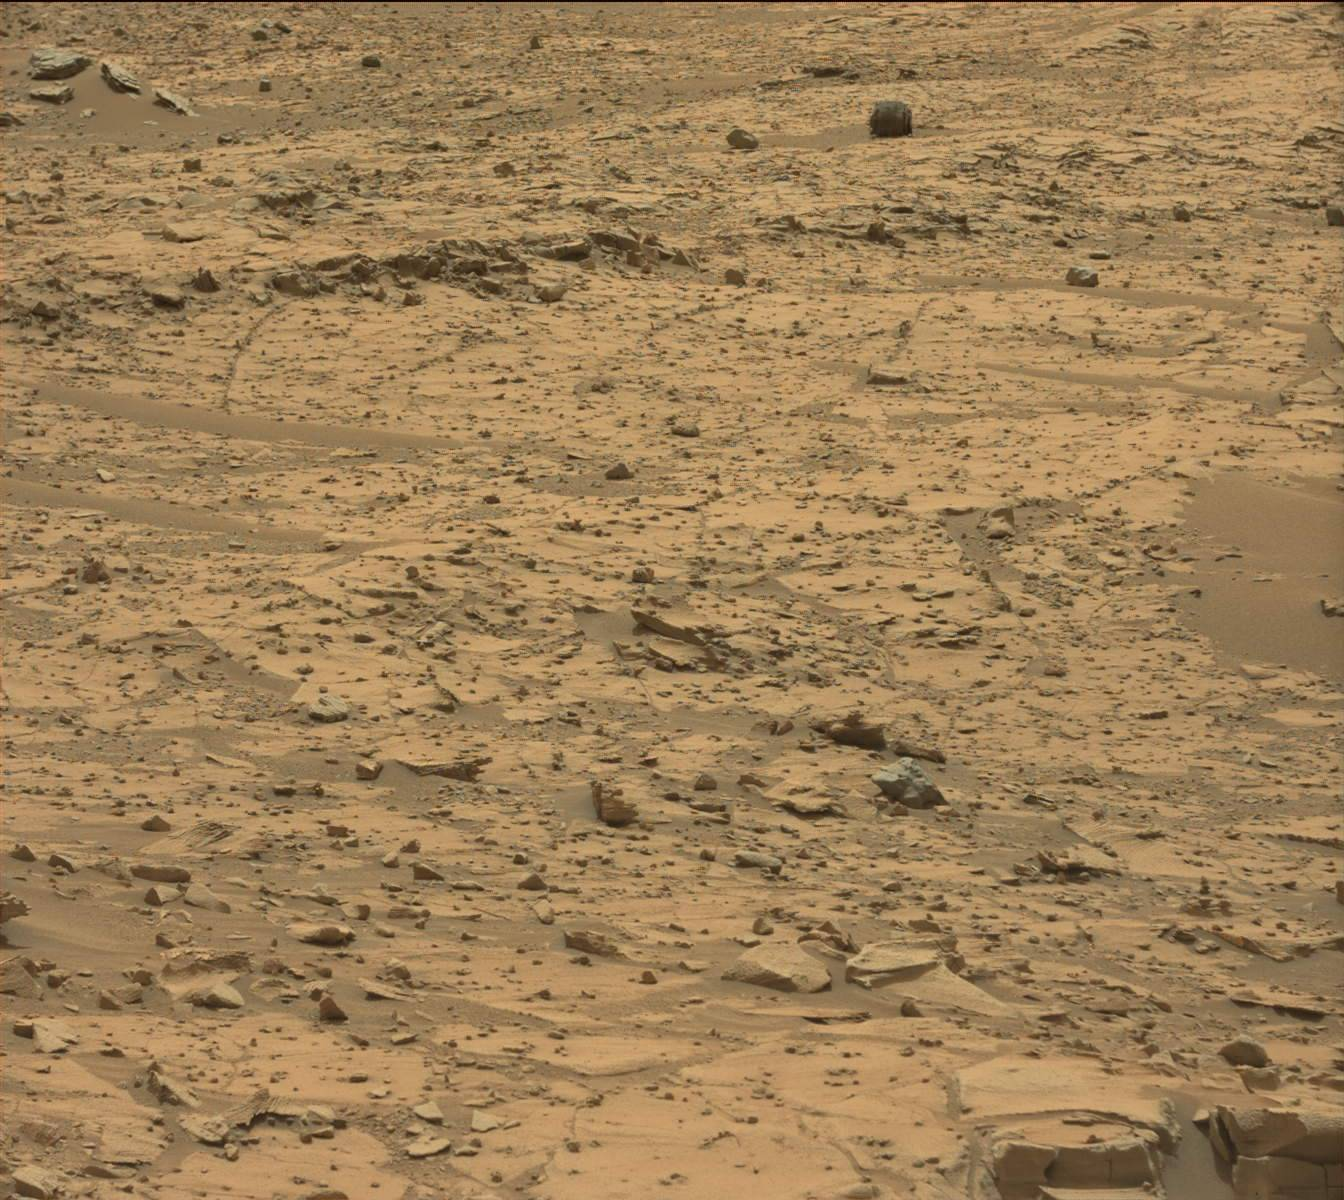 stones of discovery on mars nasa - photo #37